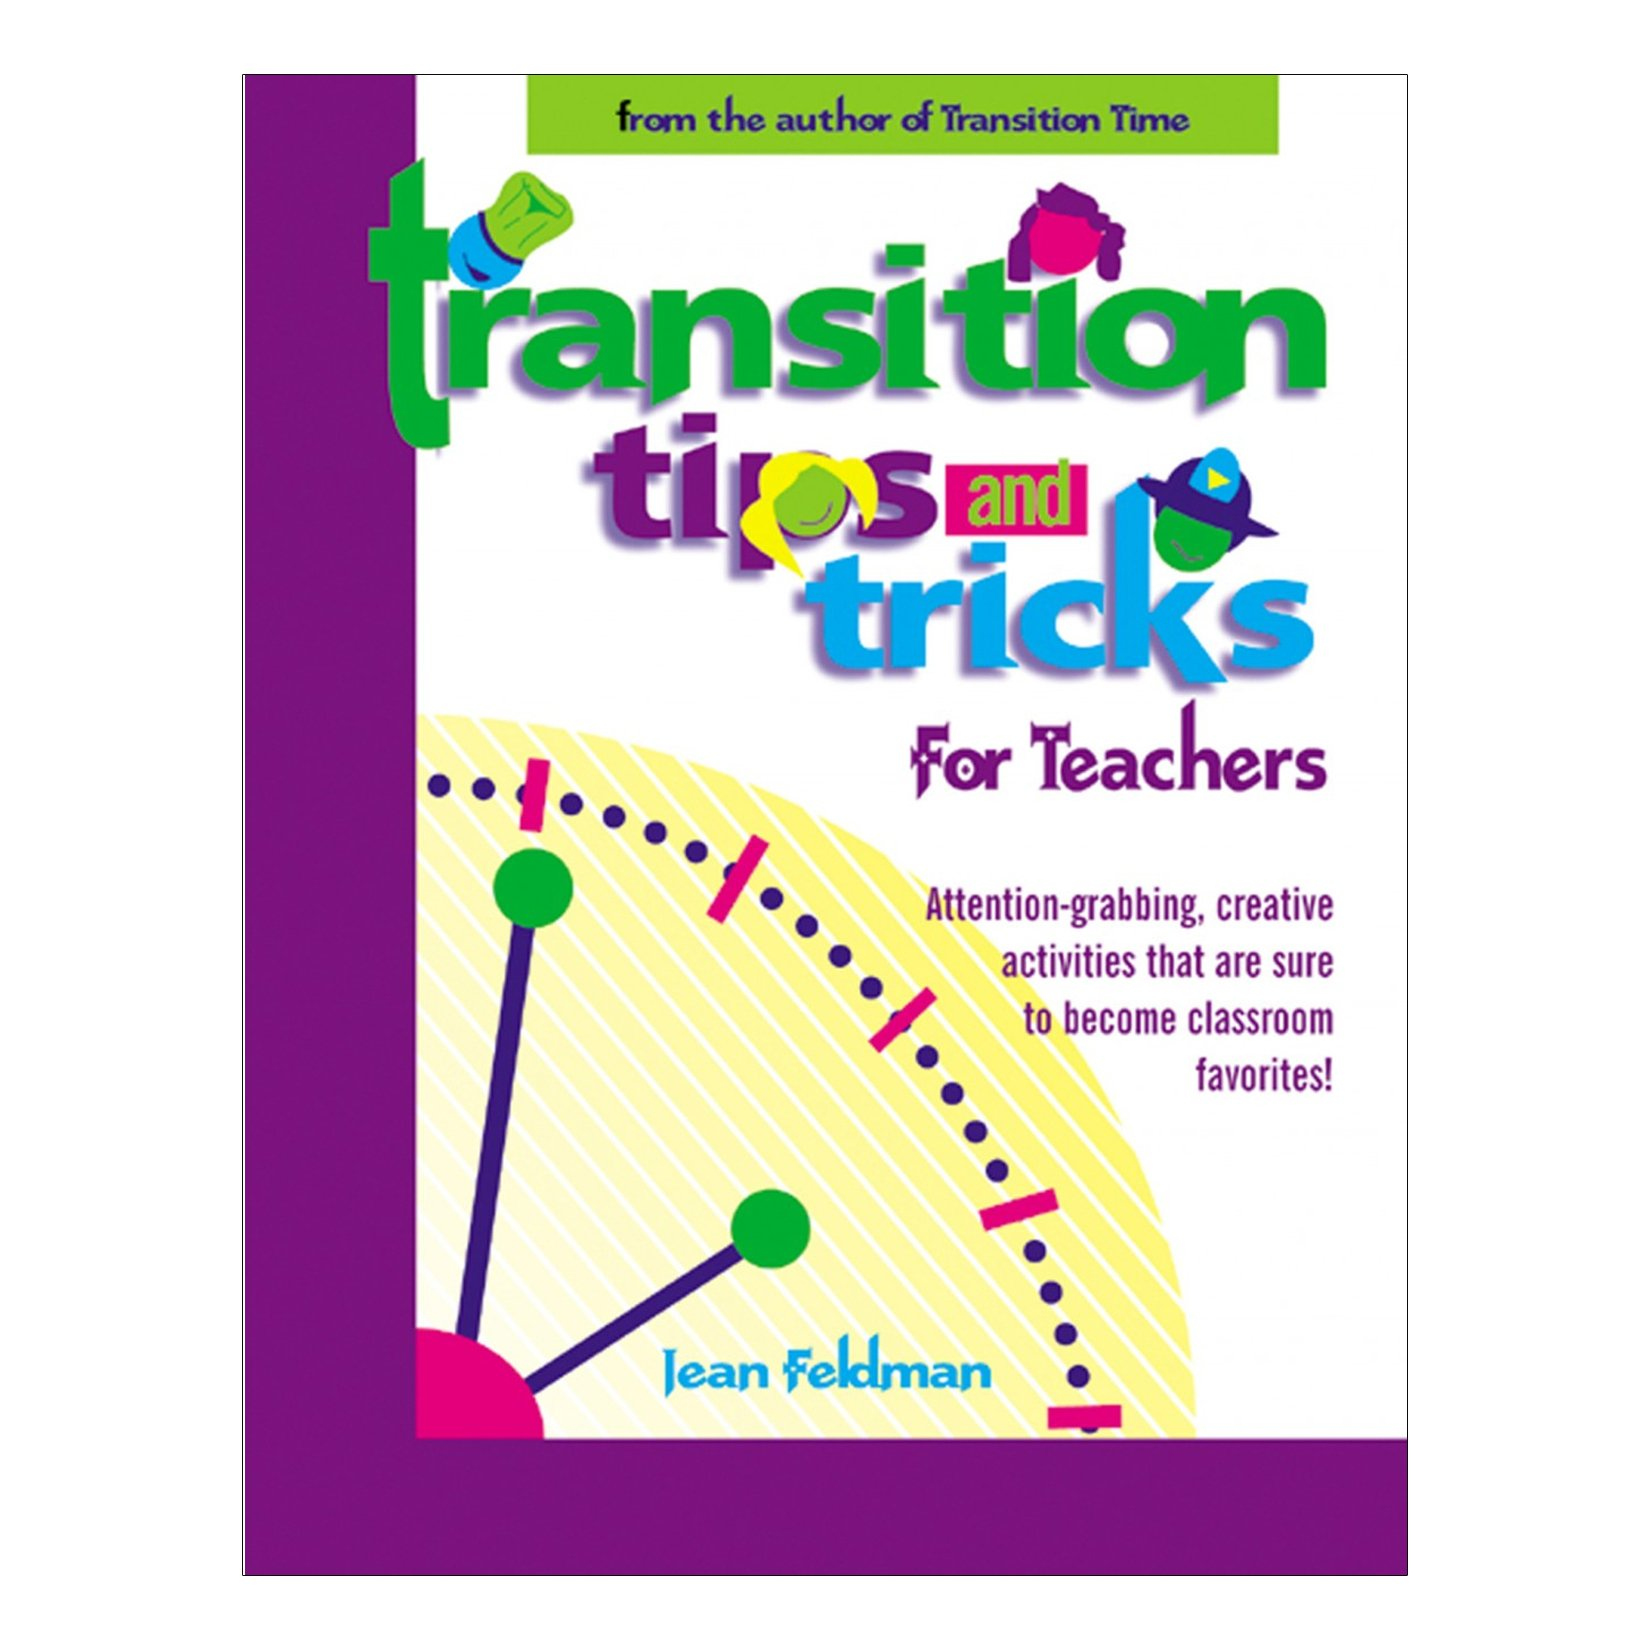 Transition Tips and Tricks for Teachers: Attention-grabbing, Creative Activities That Are Sure to Become Classroom Favourites! pdf